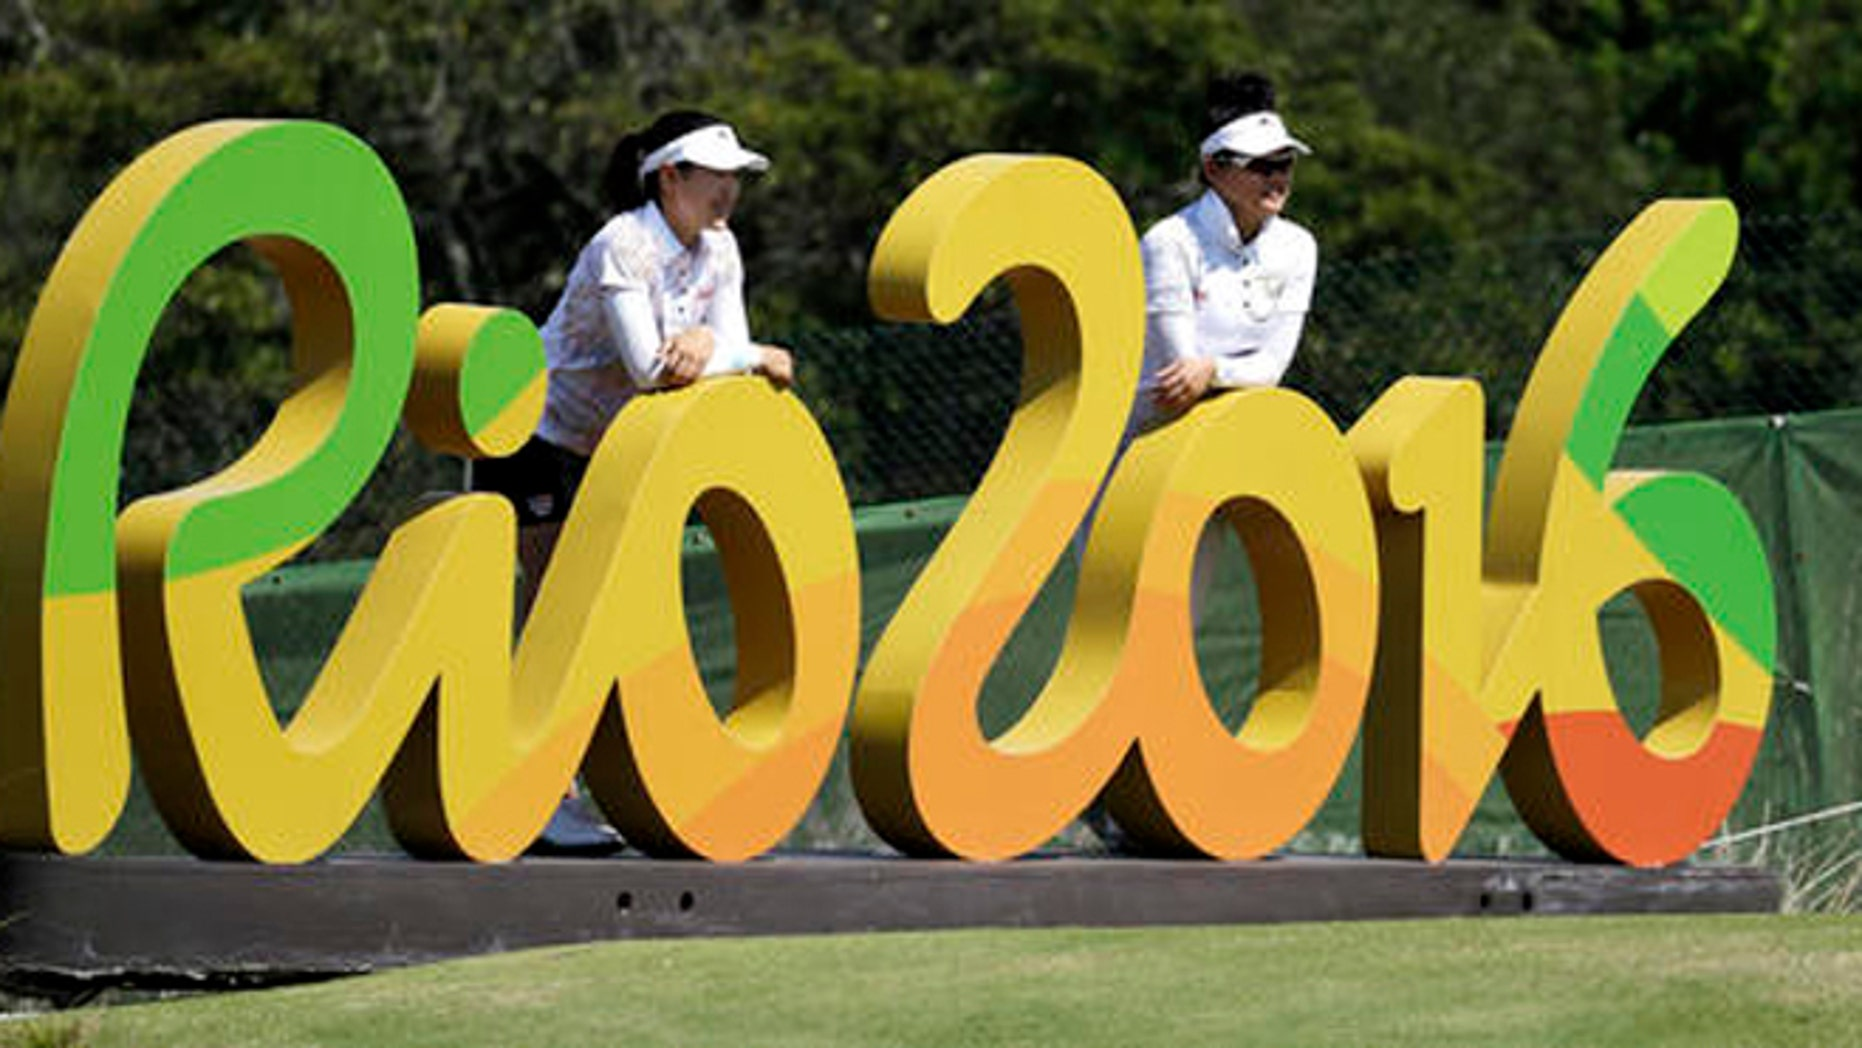 FILE  - In this Aug.16, 2016 file photo, Kelly Tan, left, and Michelle Koh both of Malaysia, pose for a photo with the Rio 2016 logo on the 16th hole during a practice round for the women's golf event at the 2016 Summer Olympics in Rio de Janeiro, Brazil. The Rio Olympics could leave behind at least one unexpected legacy _ a new home for the consular office of the United States. The headquarters of the Rio de Janeiro Olympic organizing committee in central Rio will be abandoned in the next few weeks with staff moving to smaller quarters in downtown Rio.   (AP Photo/Chris Carlson, File)